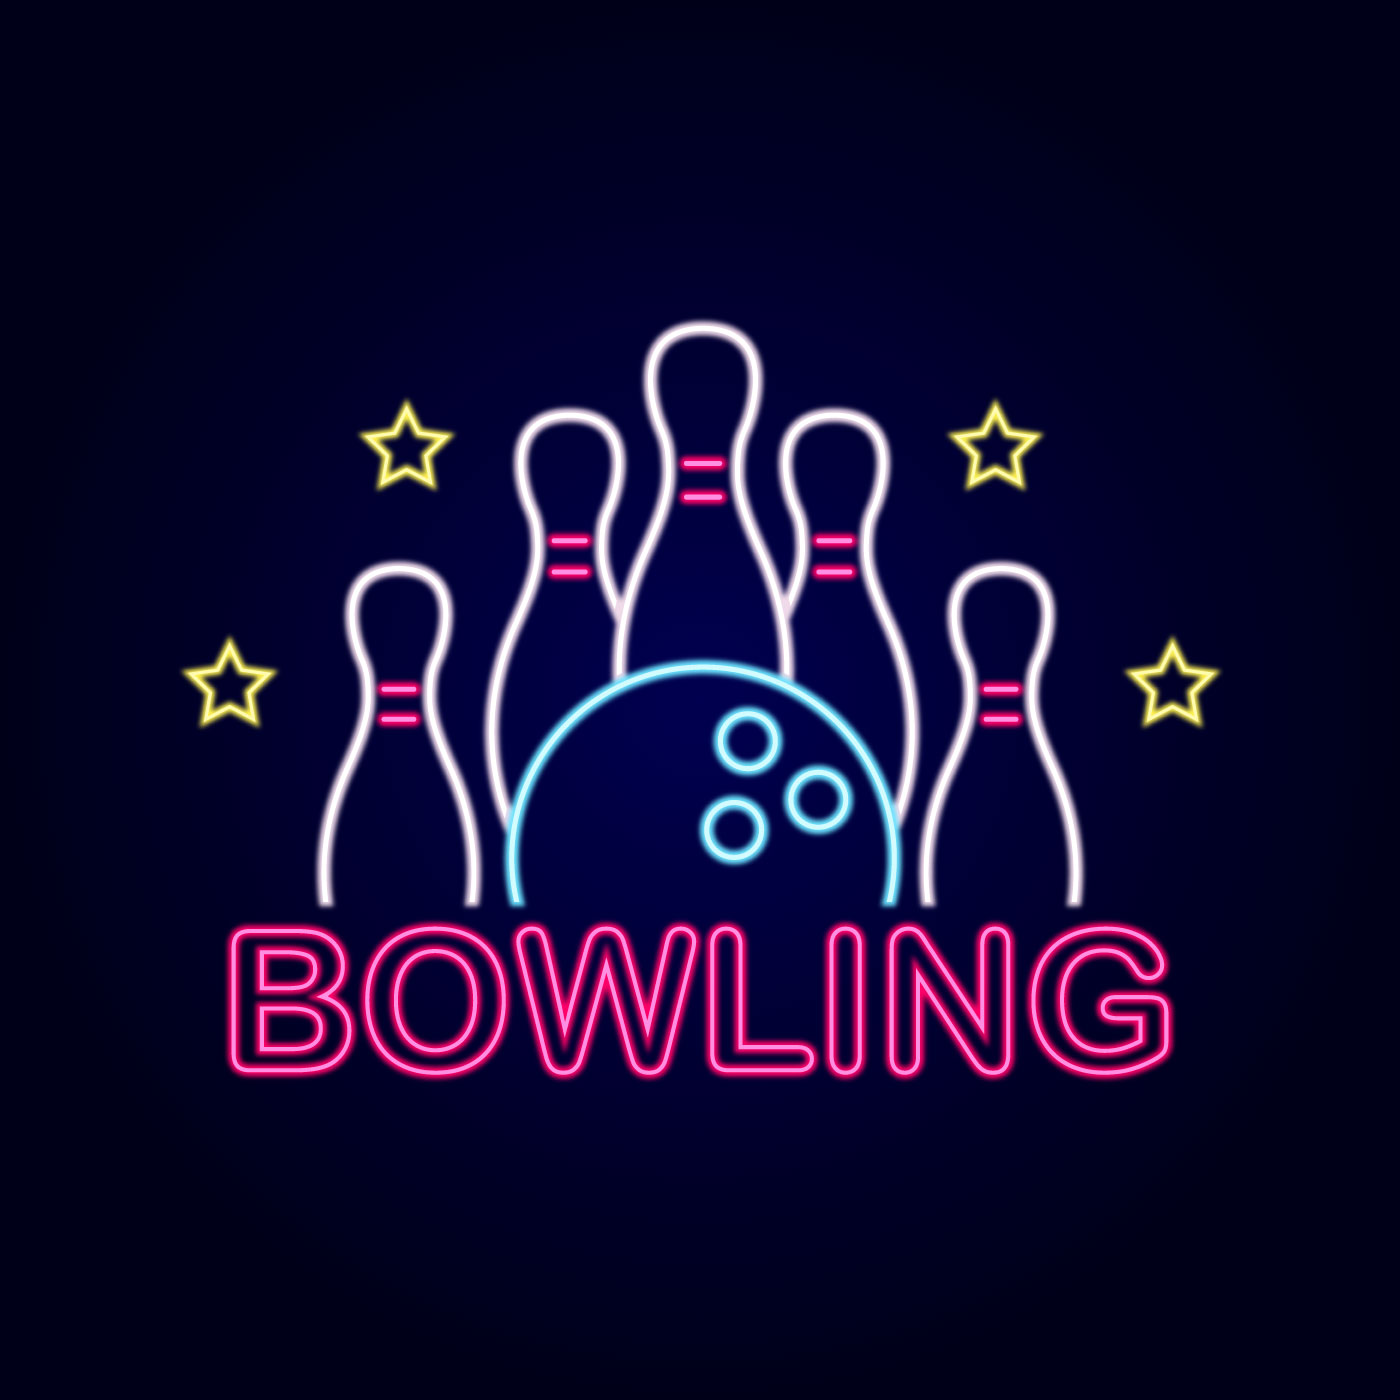 Neon Bowling Sign - Download Free Vectors, Clipart ...